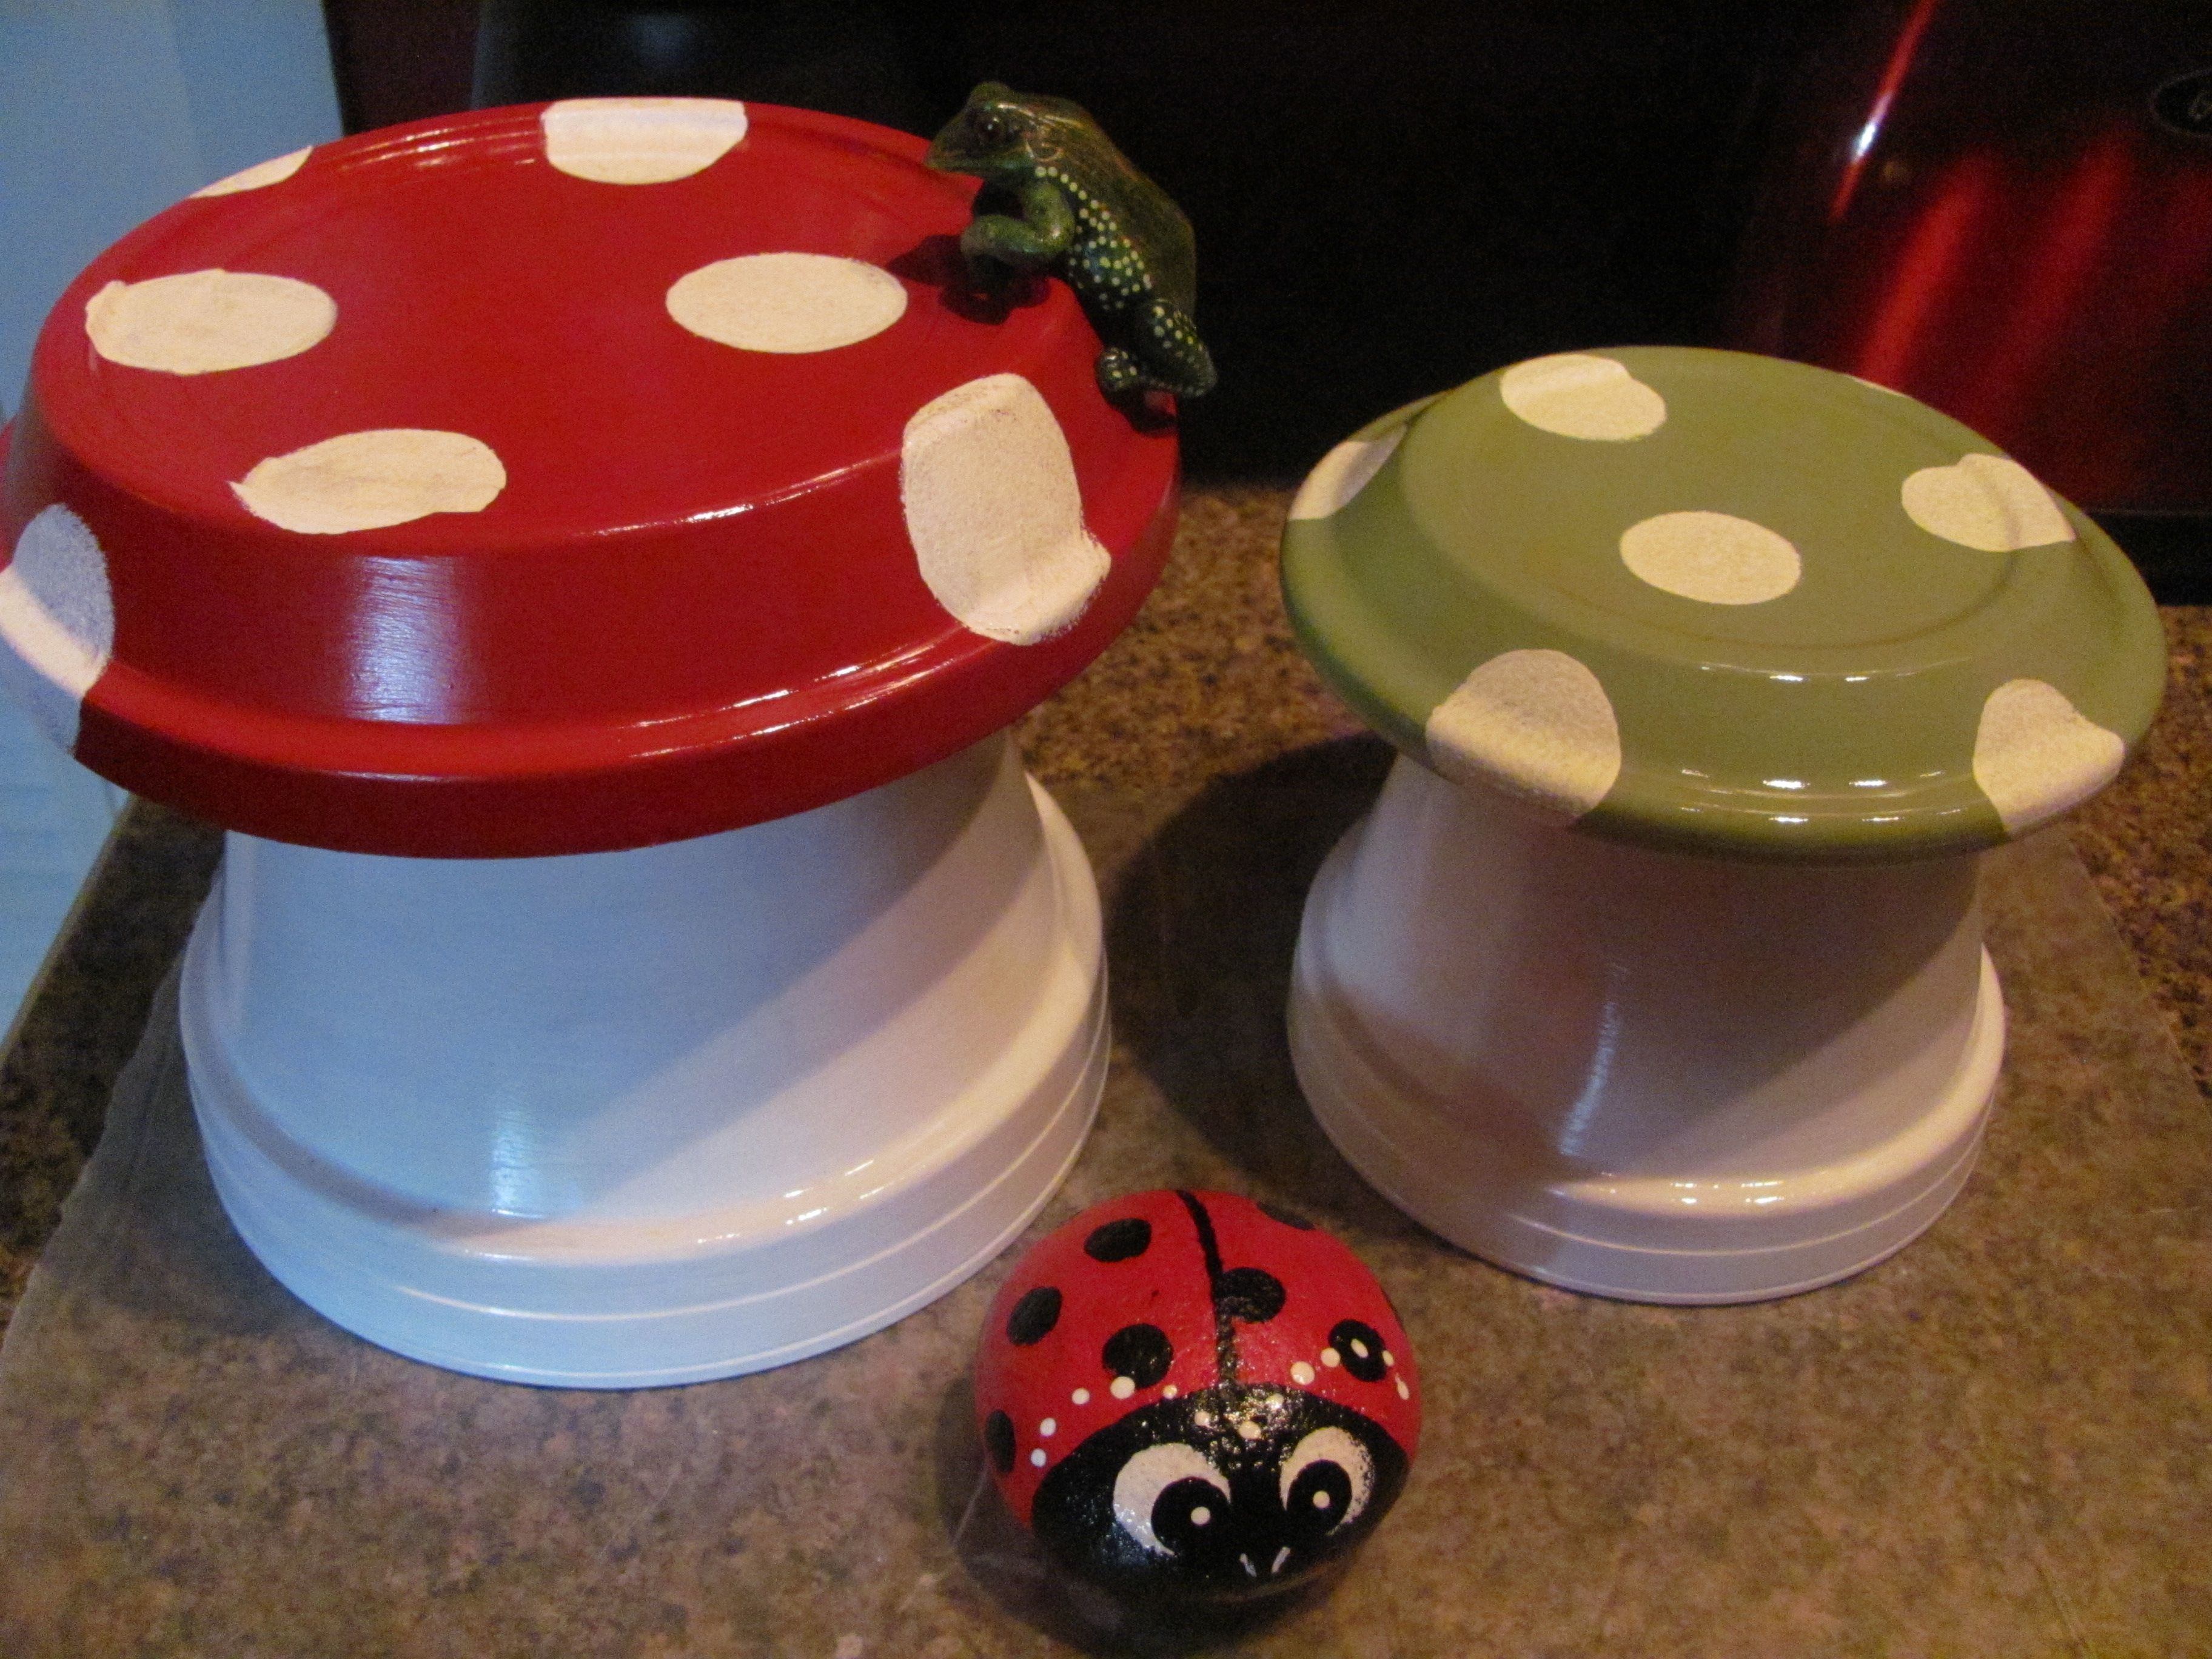 Diy mushroom chair - Lady Bug Painted On Rock With Clay Pot Mushrooms That I Made